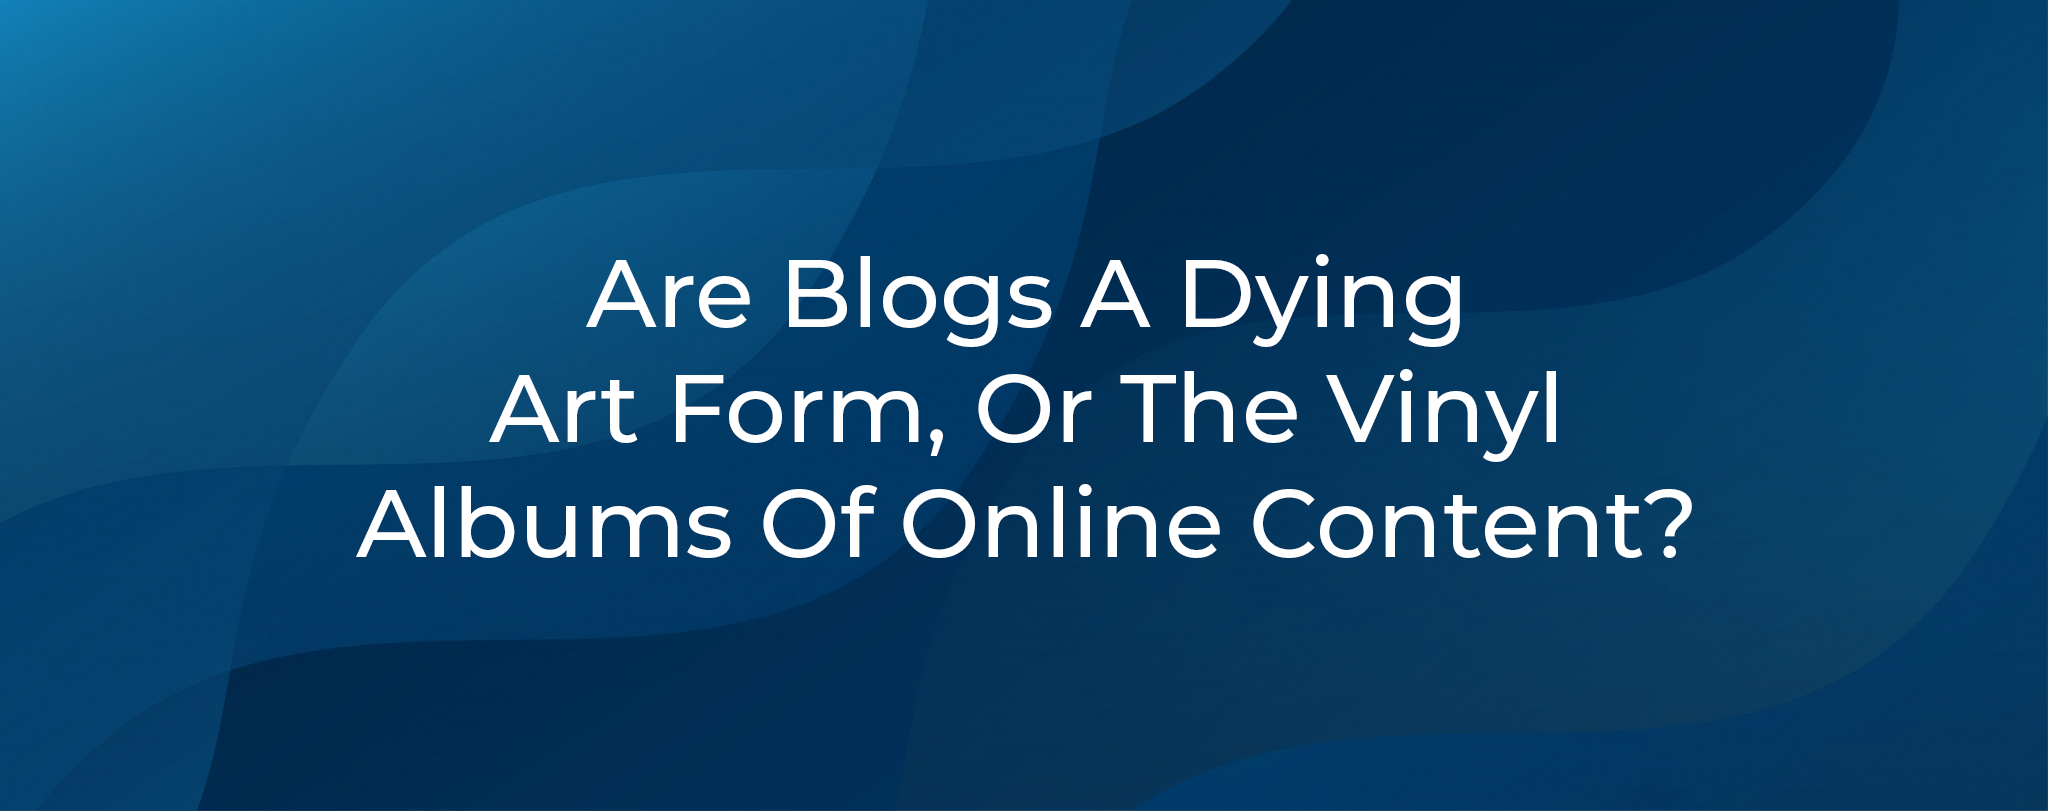 Are Blogs A Dying Art Form Or Vinyl Albums Of Online Content